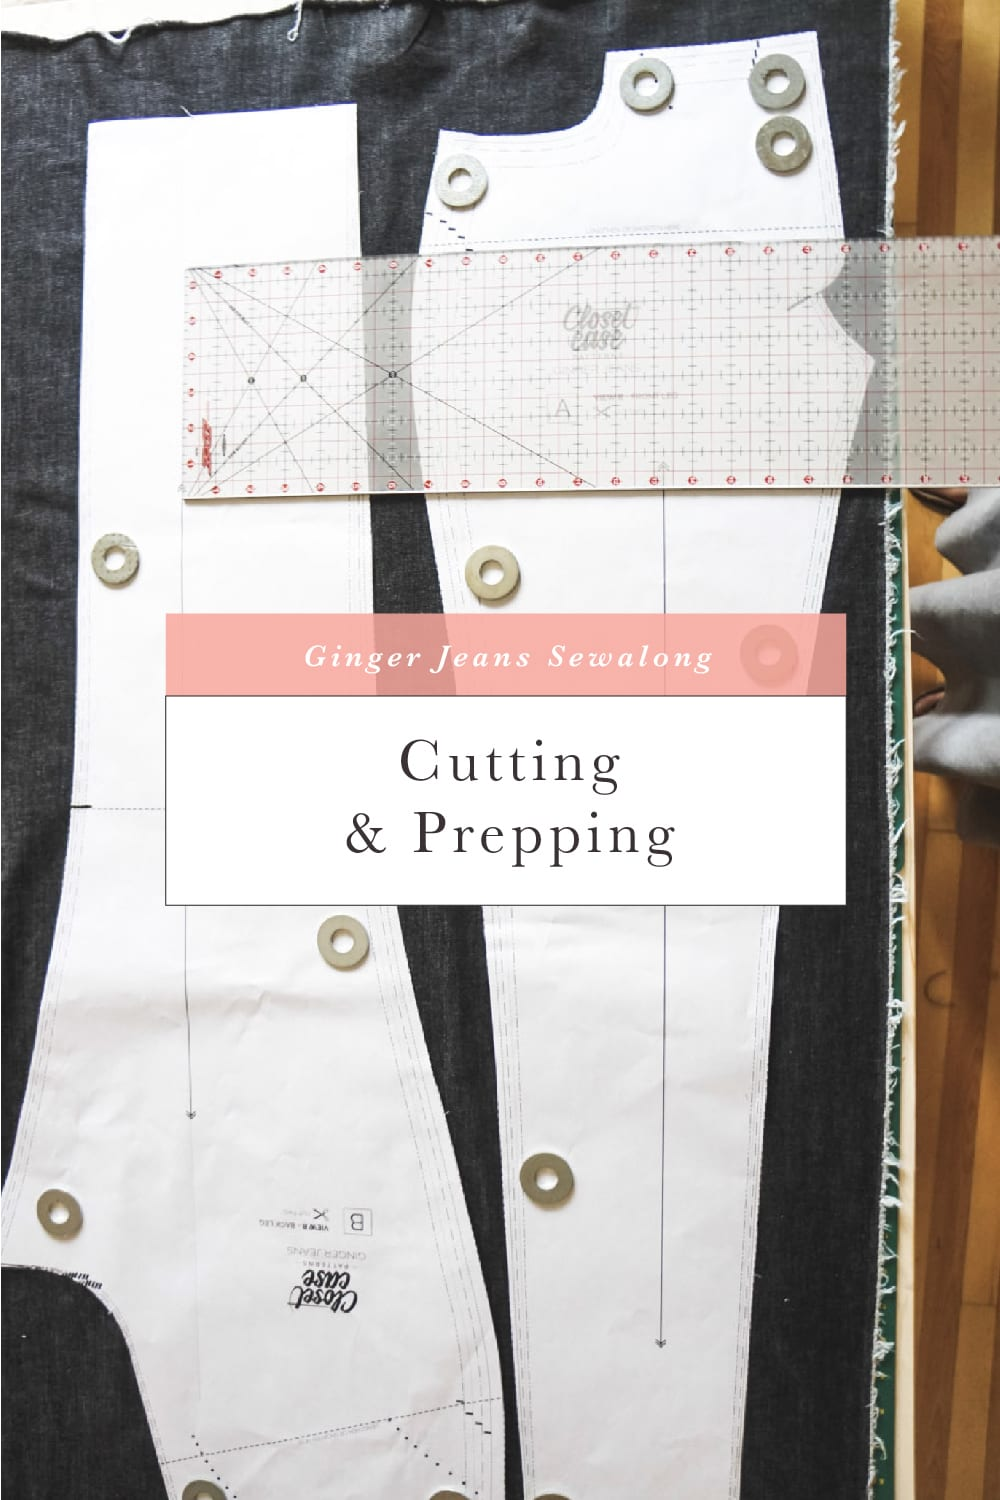 Cutting & prepping denim // Ginger Jeans Sewalong // Closet Case Patterns